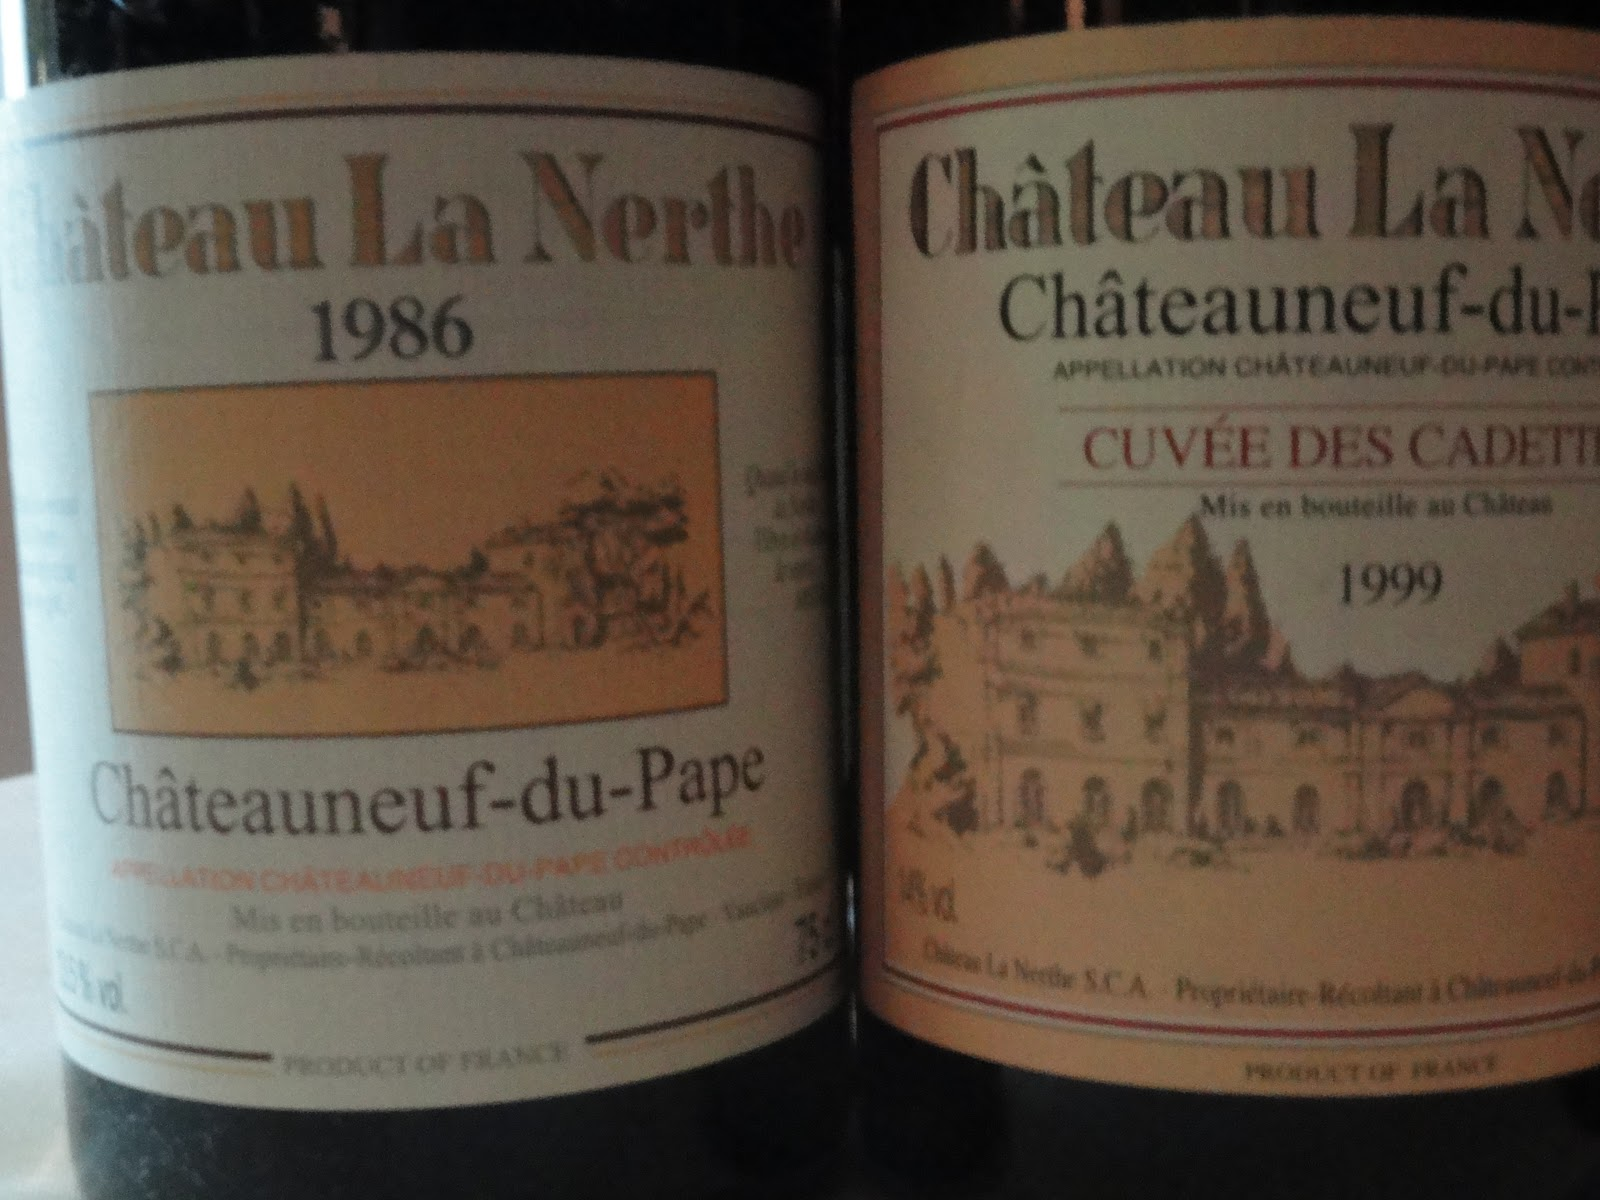 The passionate foodie chateau la nerthe all about the blends for Chateau la nerthe